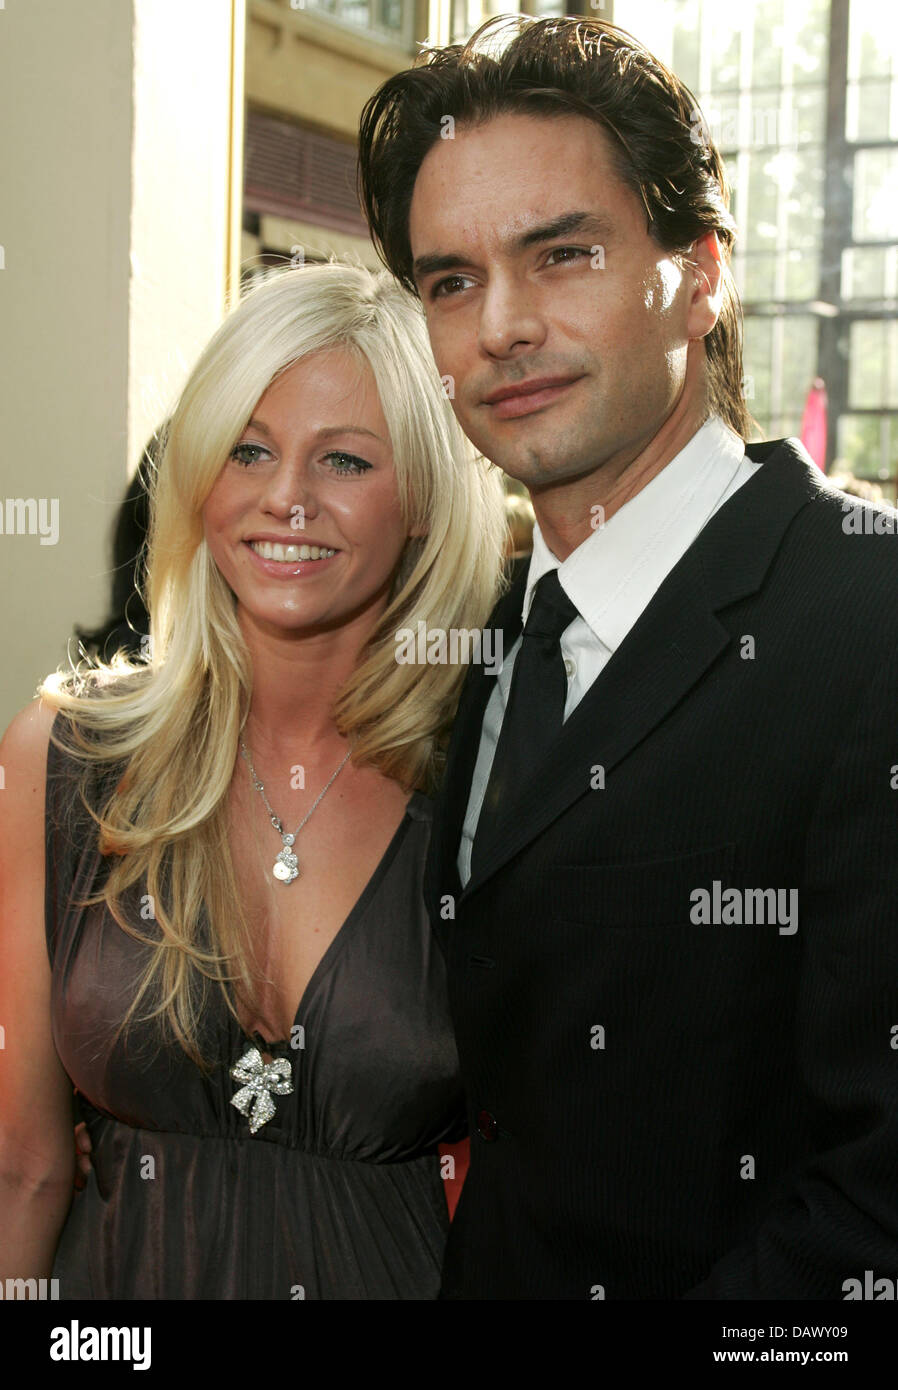 Model marcus schenkenberg and his girlfriend laureen pose at the model marcus schenkenberg and his girlfriend laureen pose at the annual unesco children in need gala in cologne germany 12 may 2007 altavistaventures Image collections